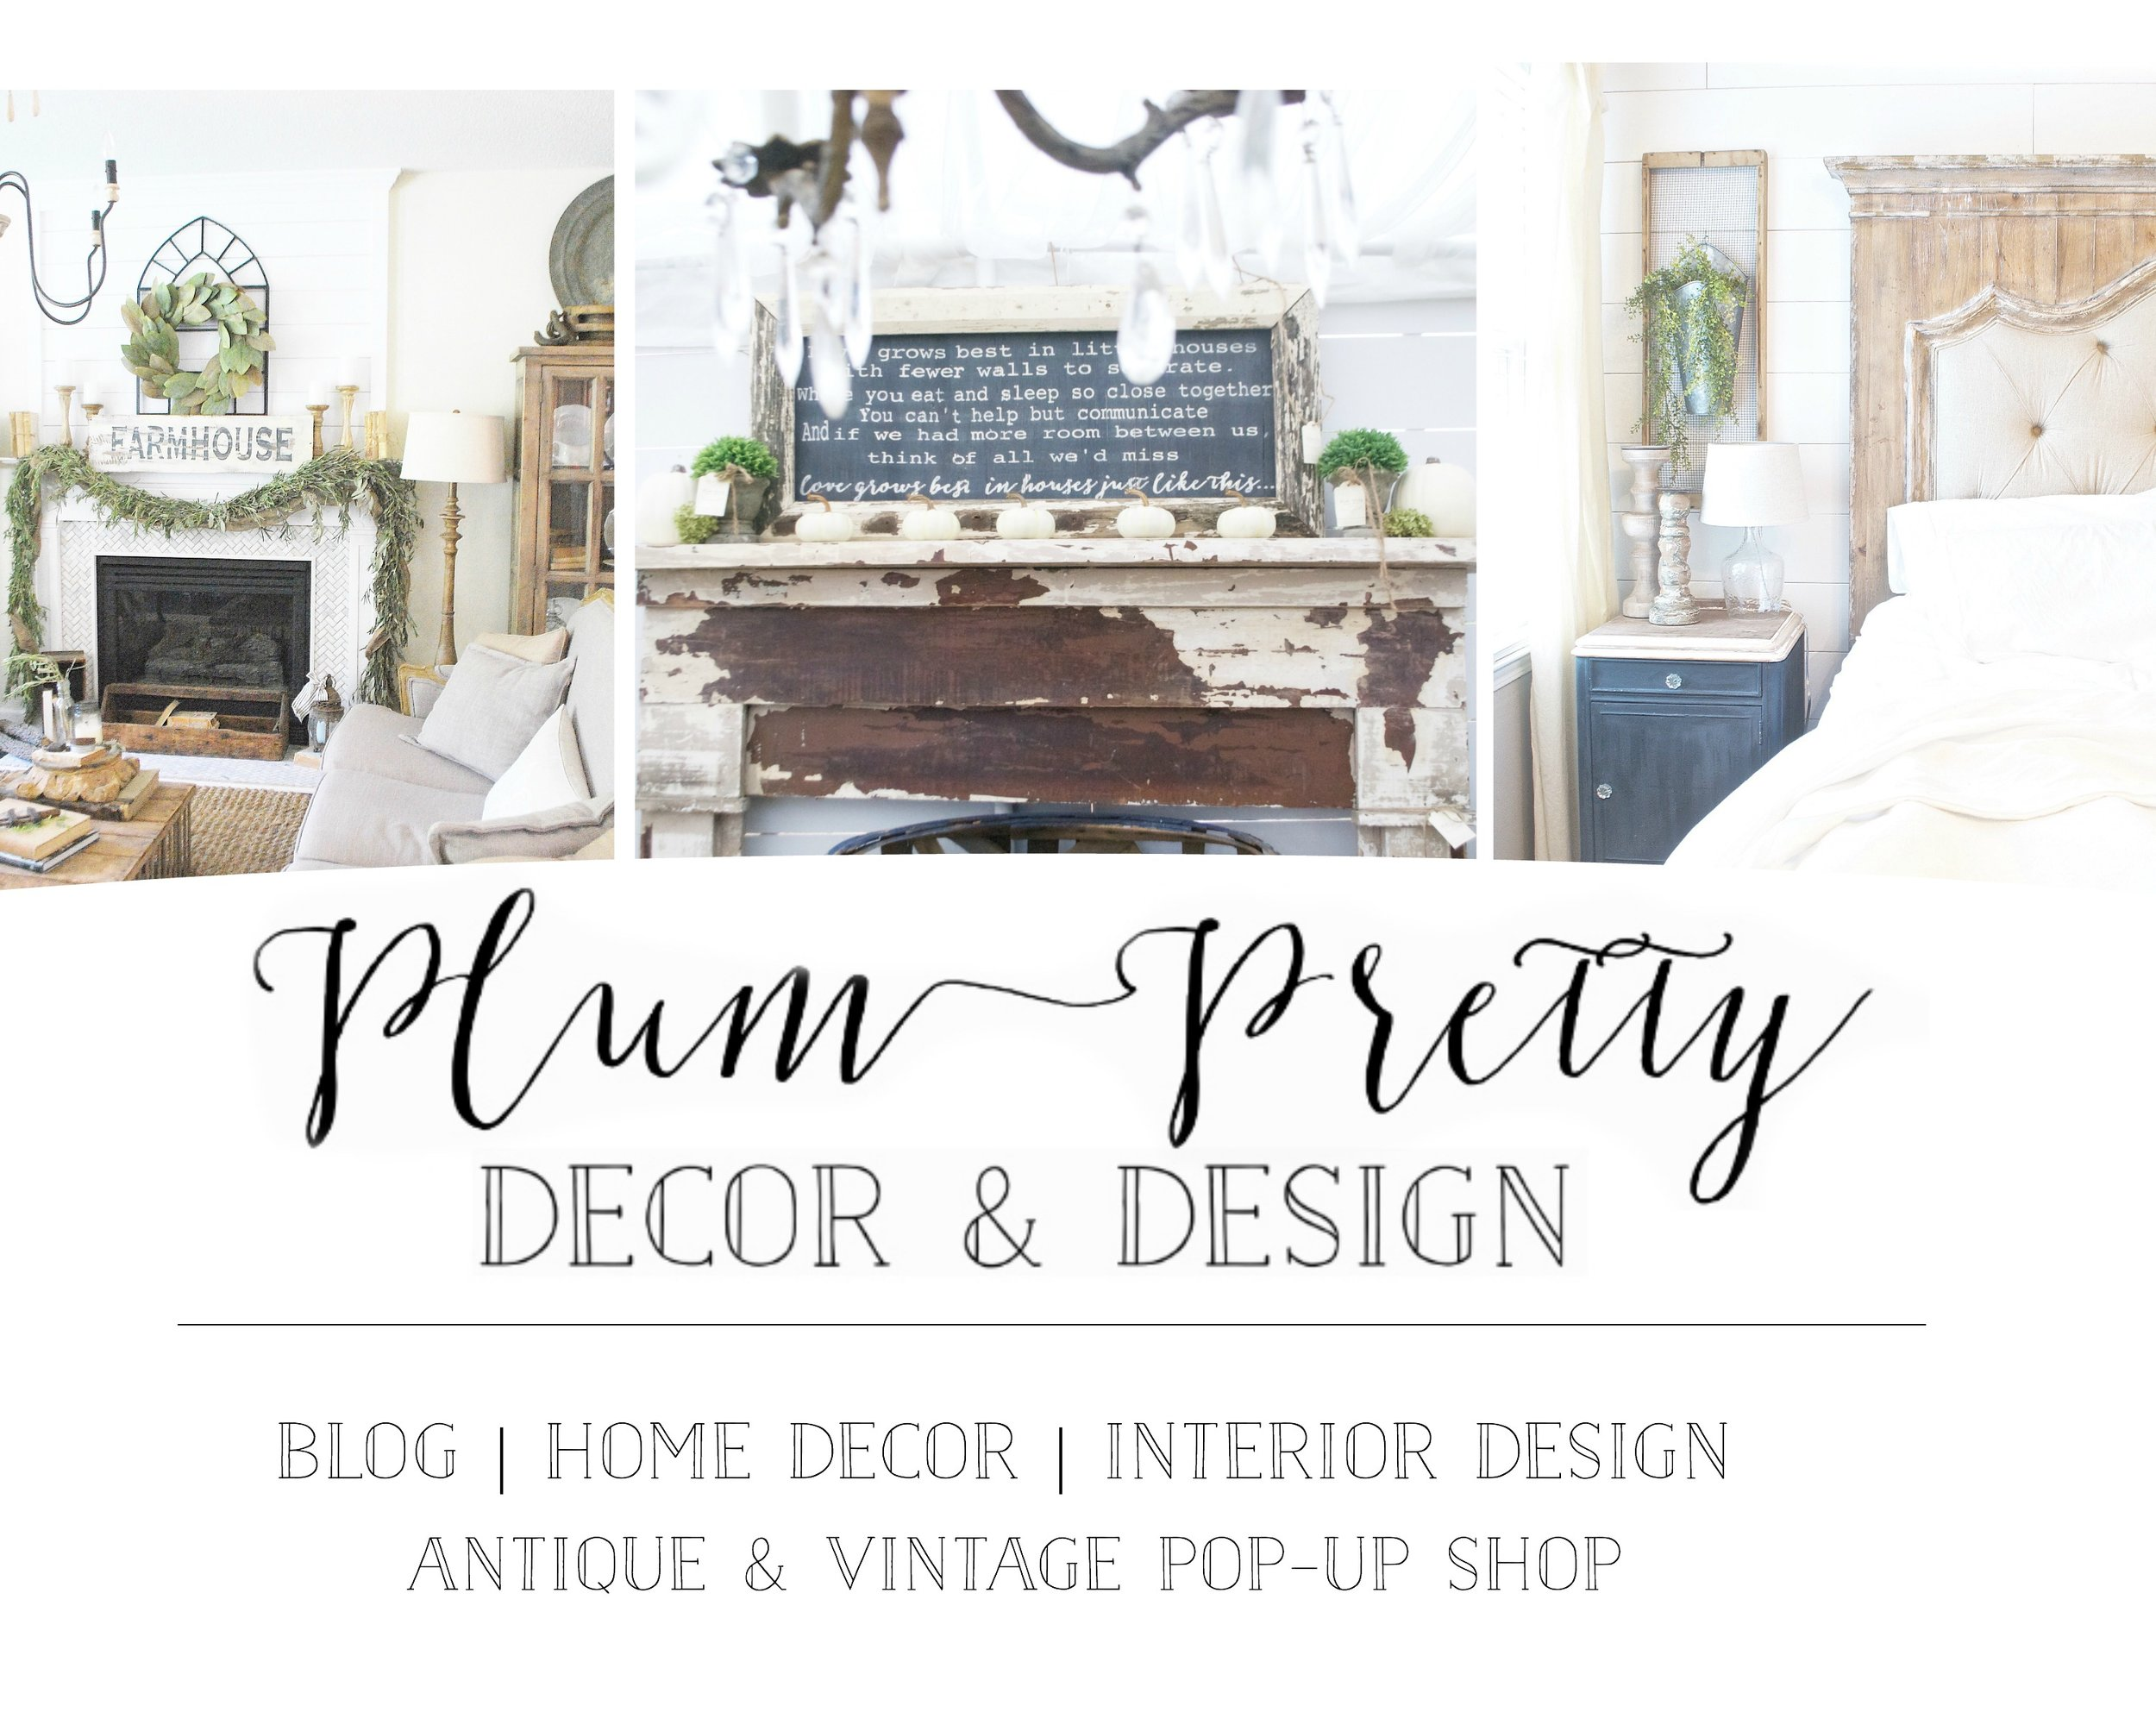 Click Image to Visit Plum Pretty Decor and Design's Instagram